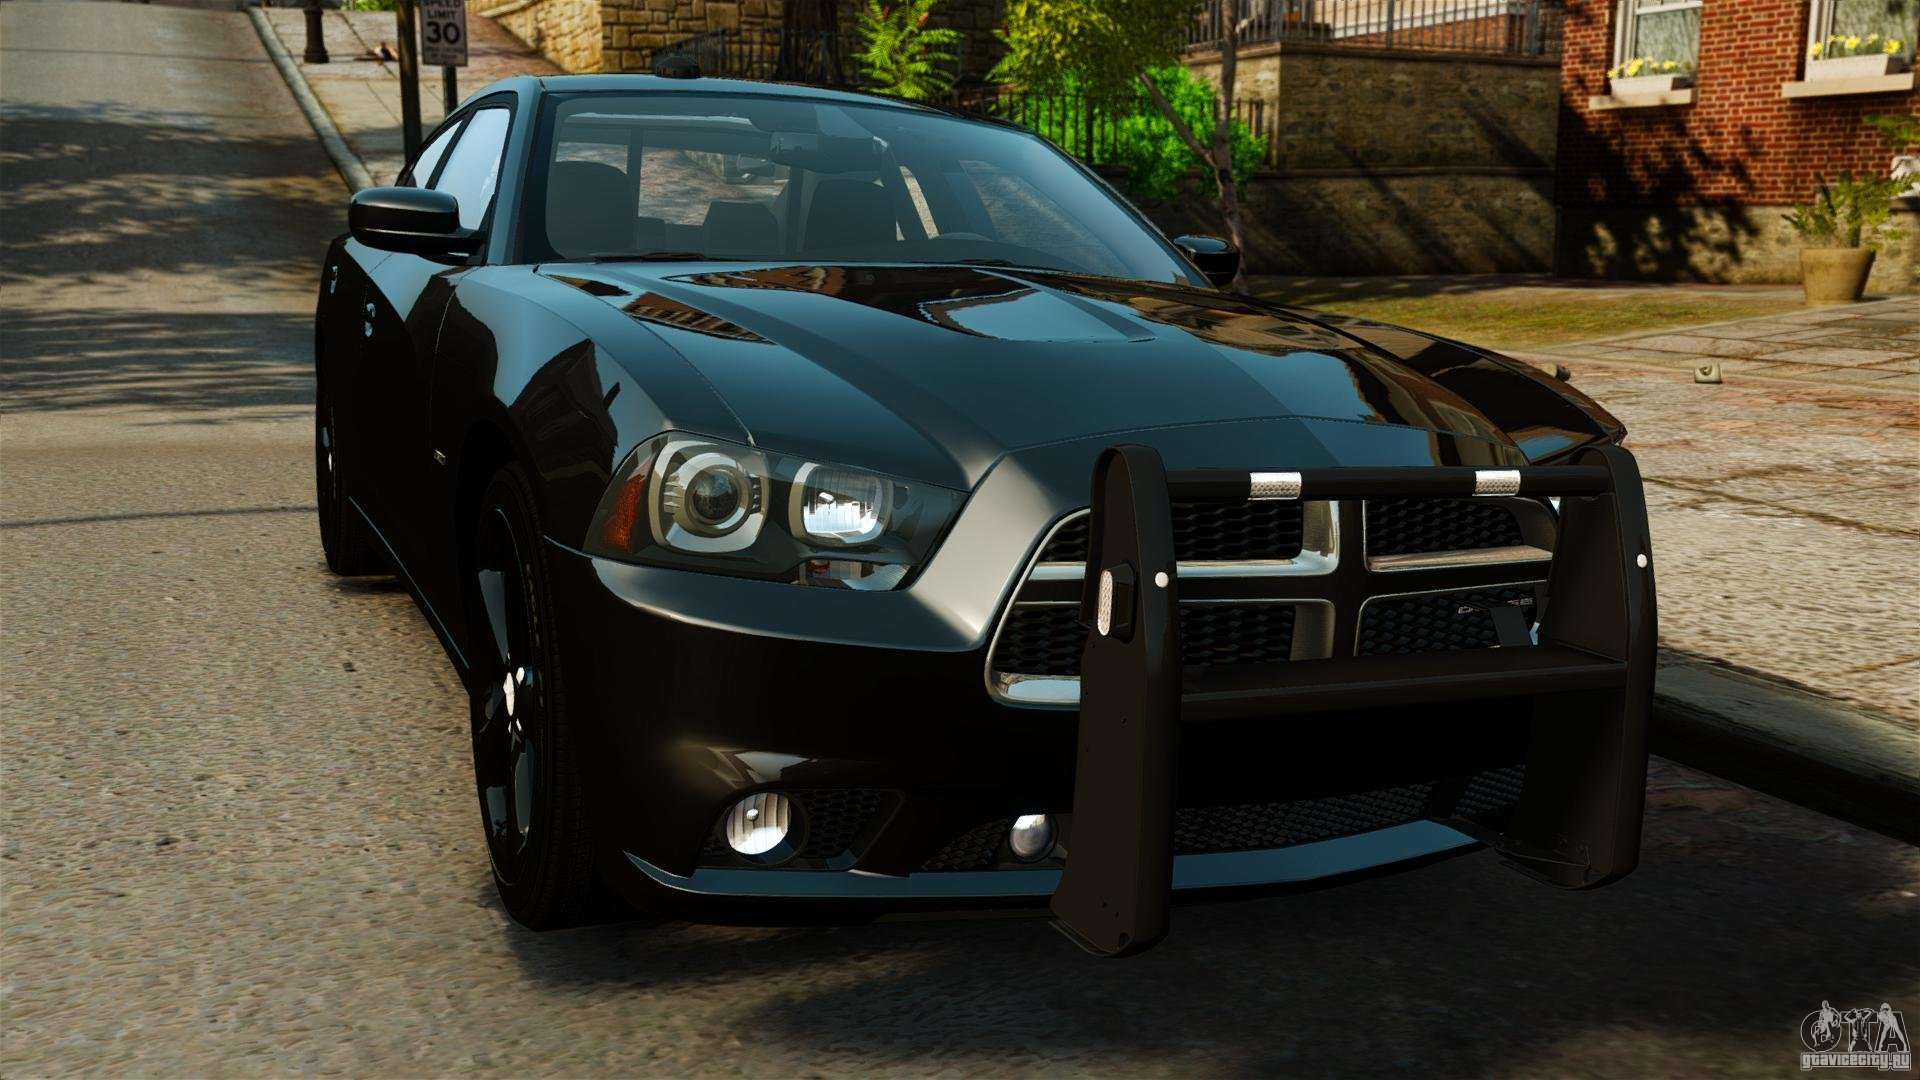 Dodge Charger Rt Max Fbi 2011 Els для Gta 4